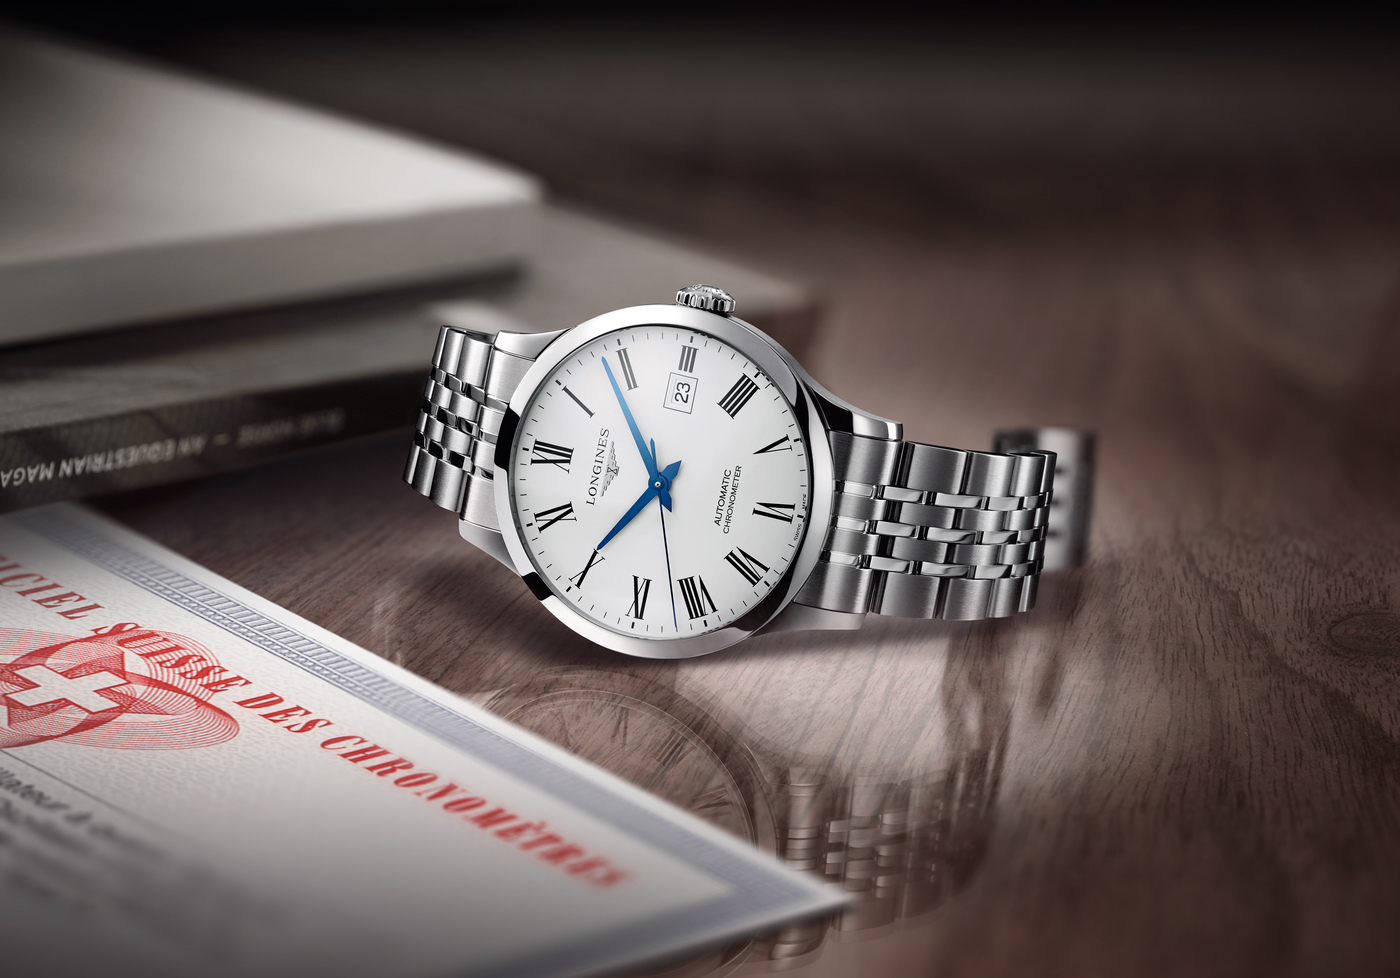 Longines Corporate Event: Longines launches new Record collection and celebrates its 185th Anniversary in Beijing 9